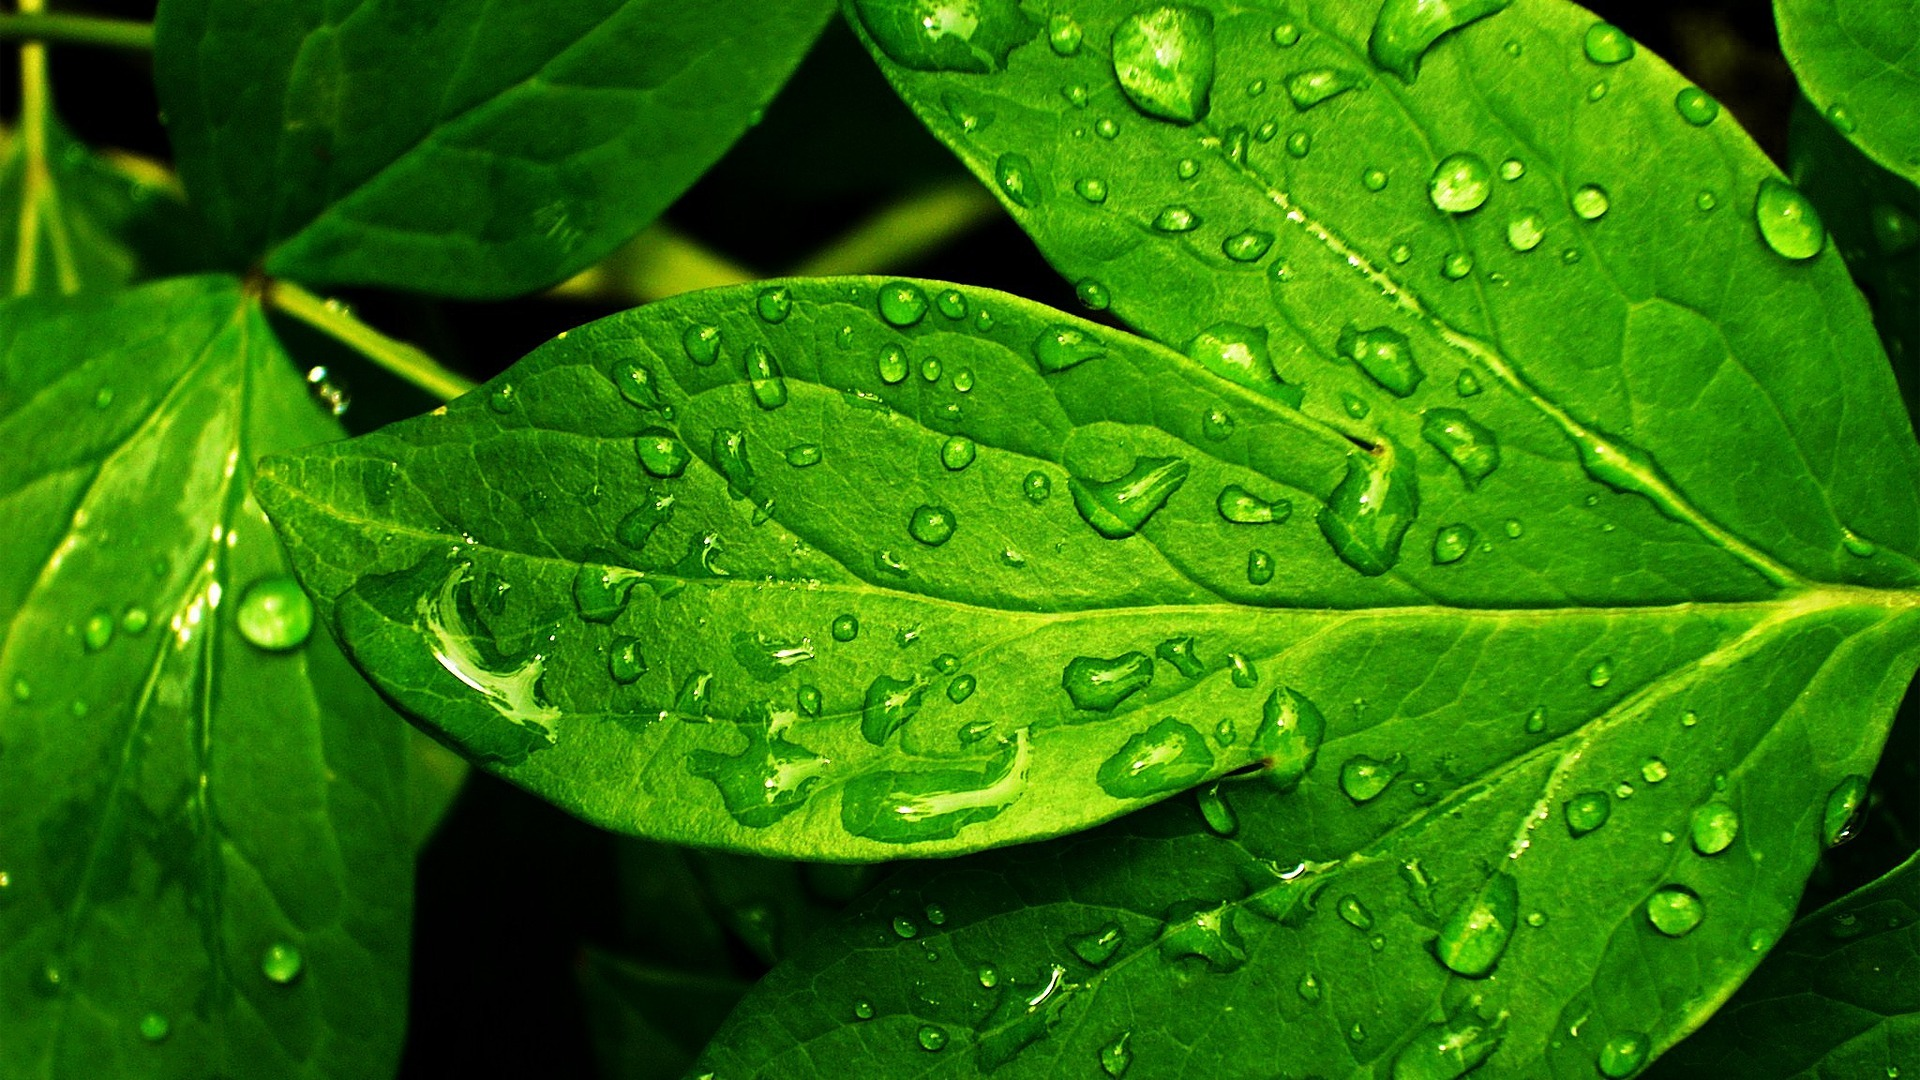 Download Nature Leaf And Backgrounds Green Fresh X For Your 356695